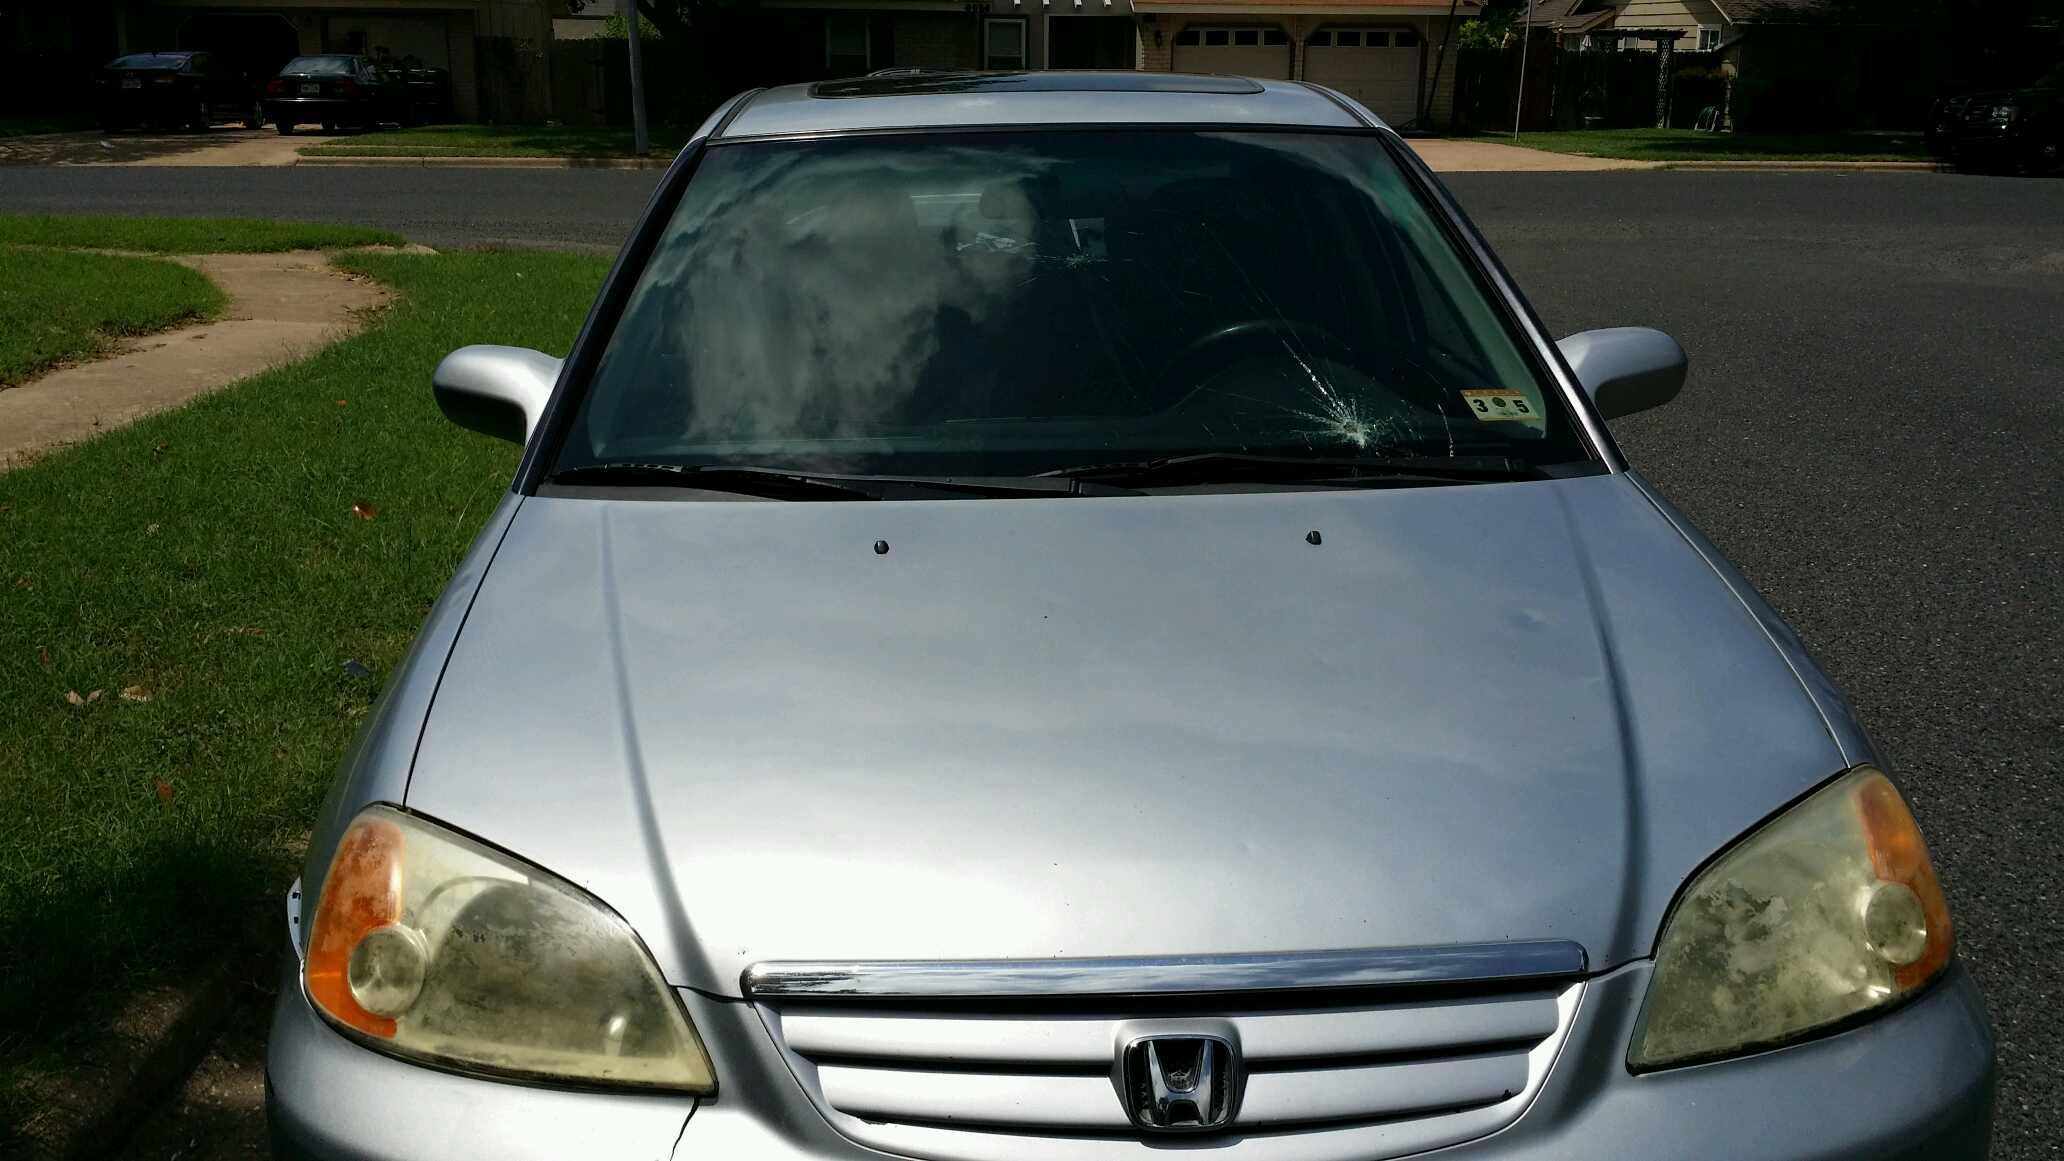 2003 honda civic 4 door sedan windshield for Honda civic windshield replacement cost